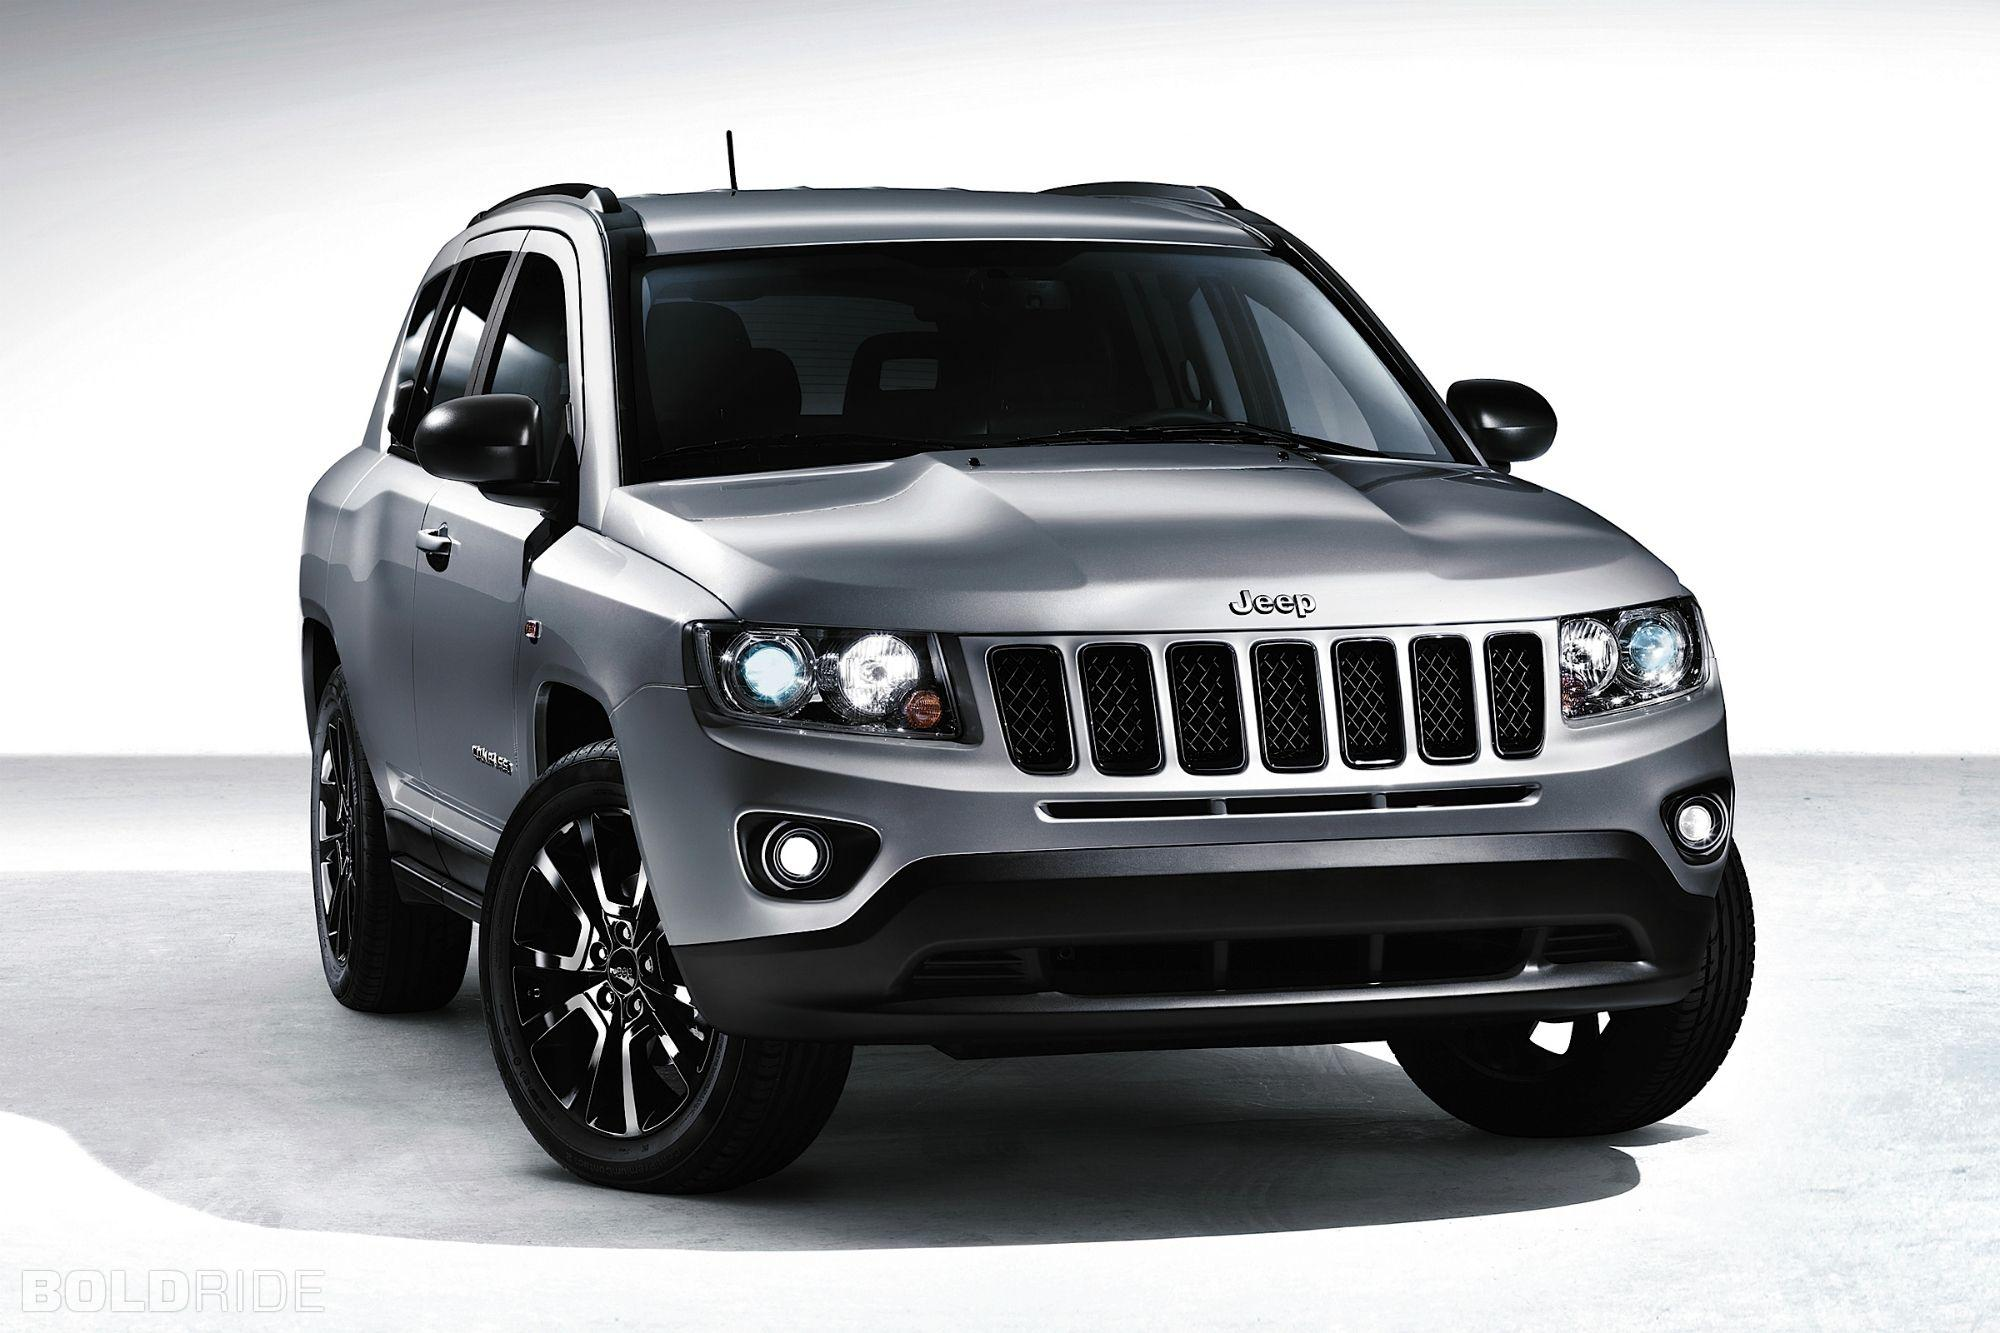 Grey Jeep Compass wallpapers and image